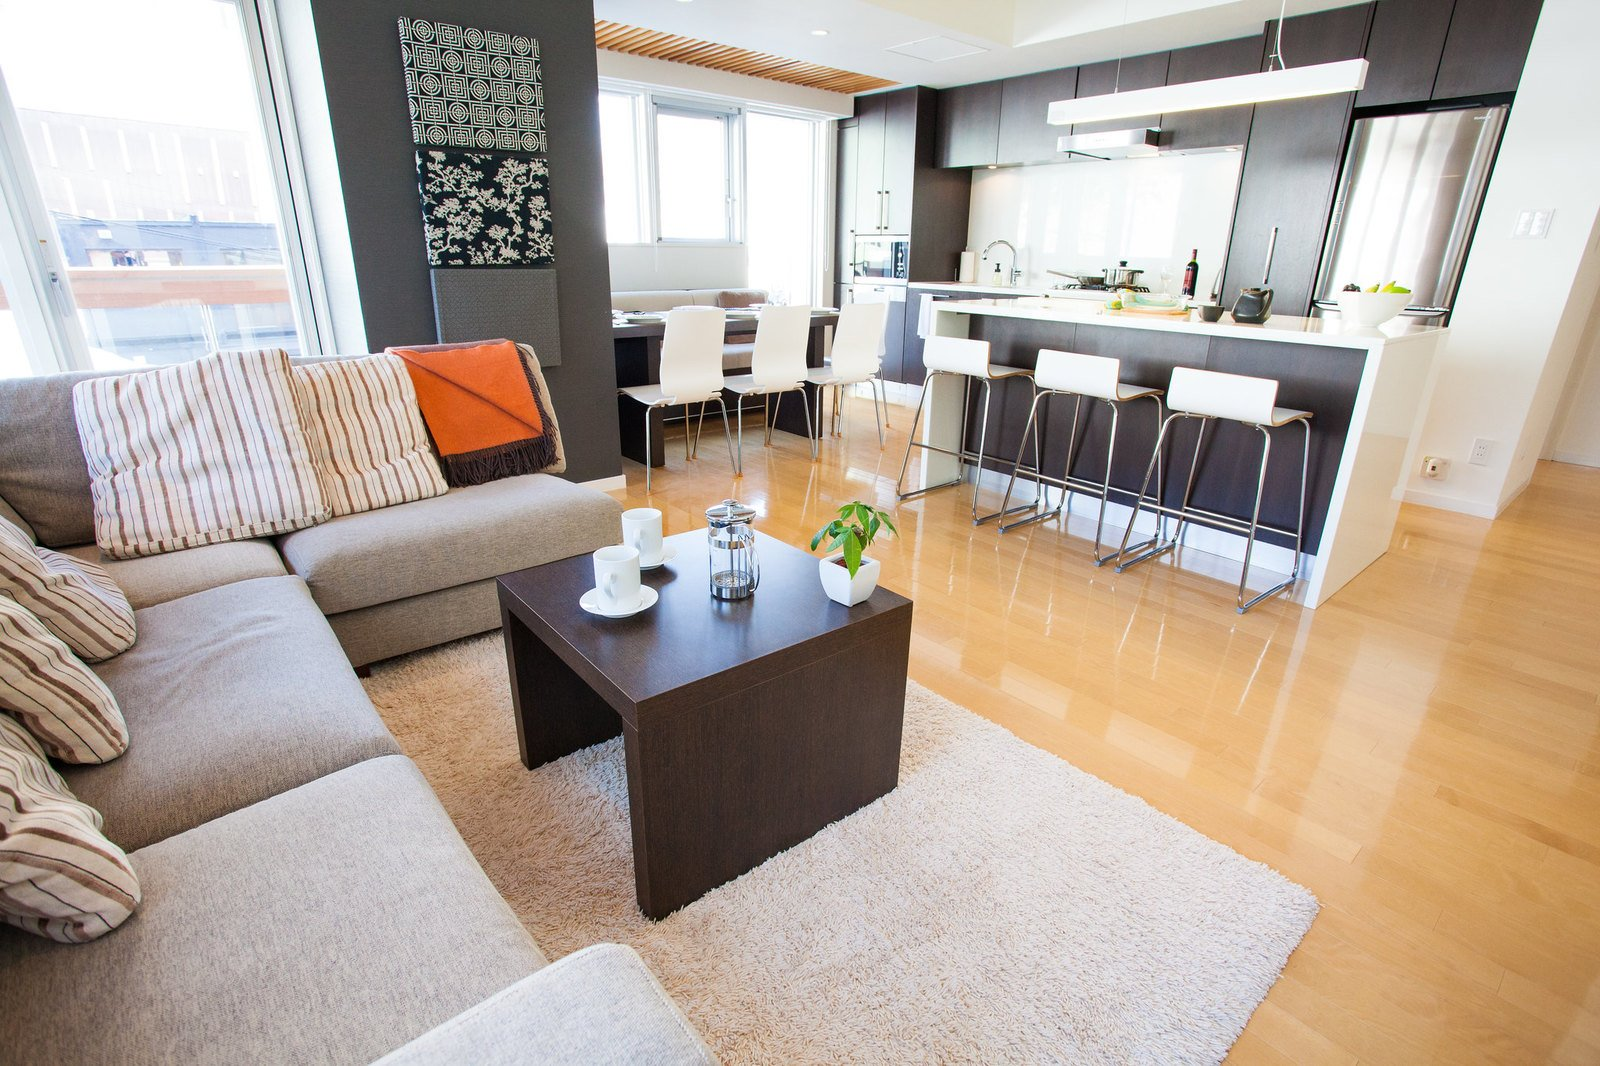 The kitchen, living and dining areas of a 3 bedroom apartment at Alpen Ridge apartments in Niseko, Japan.